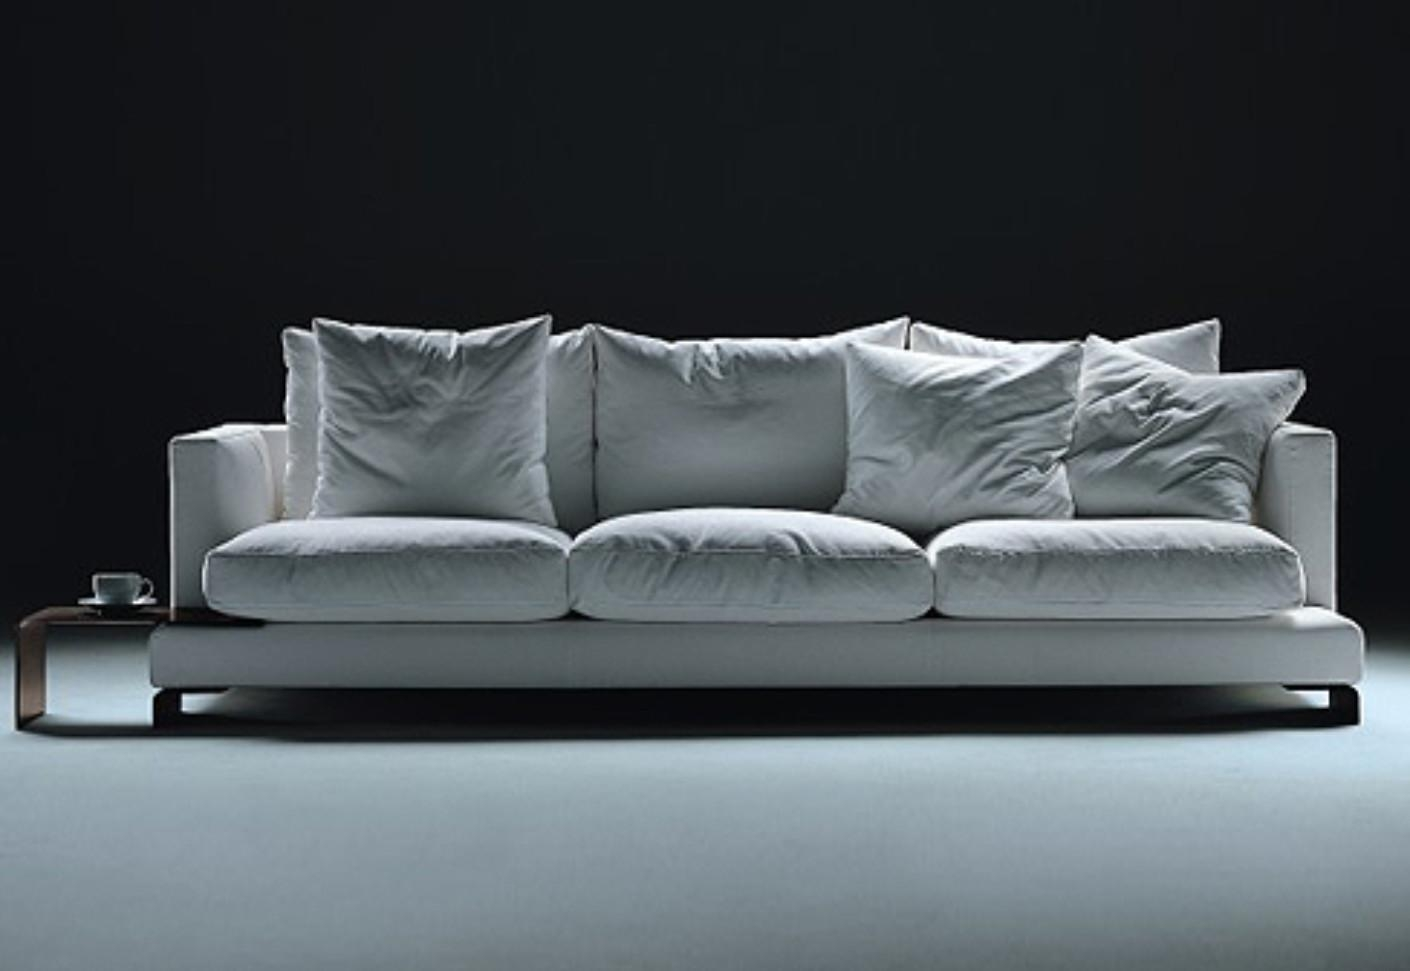 Long Island Sofaflexform | Stylepark With Regard To Flexform Sofas (View 11 of 20)